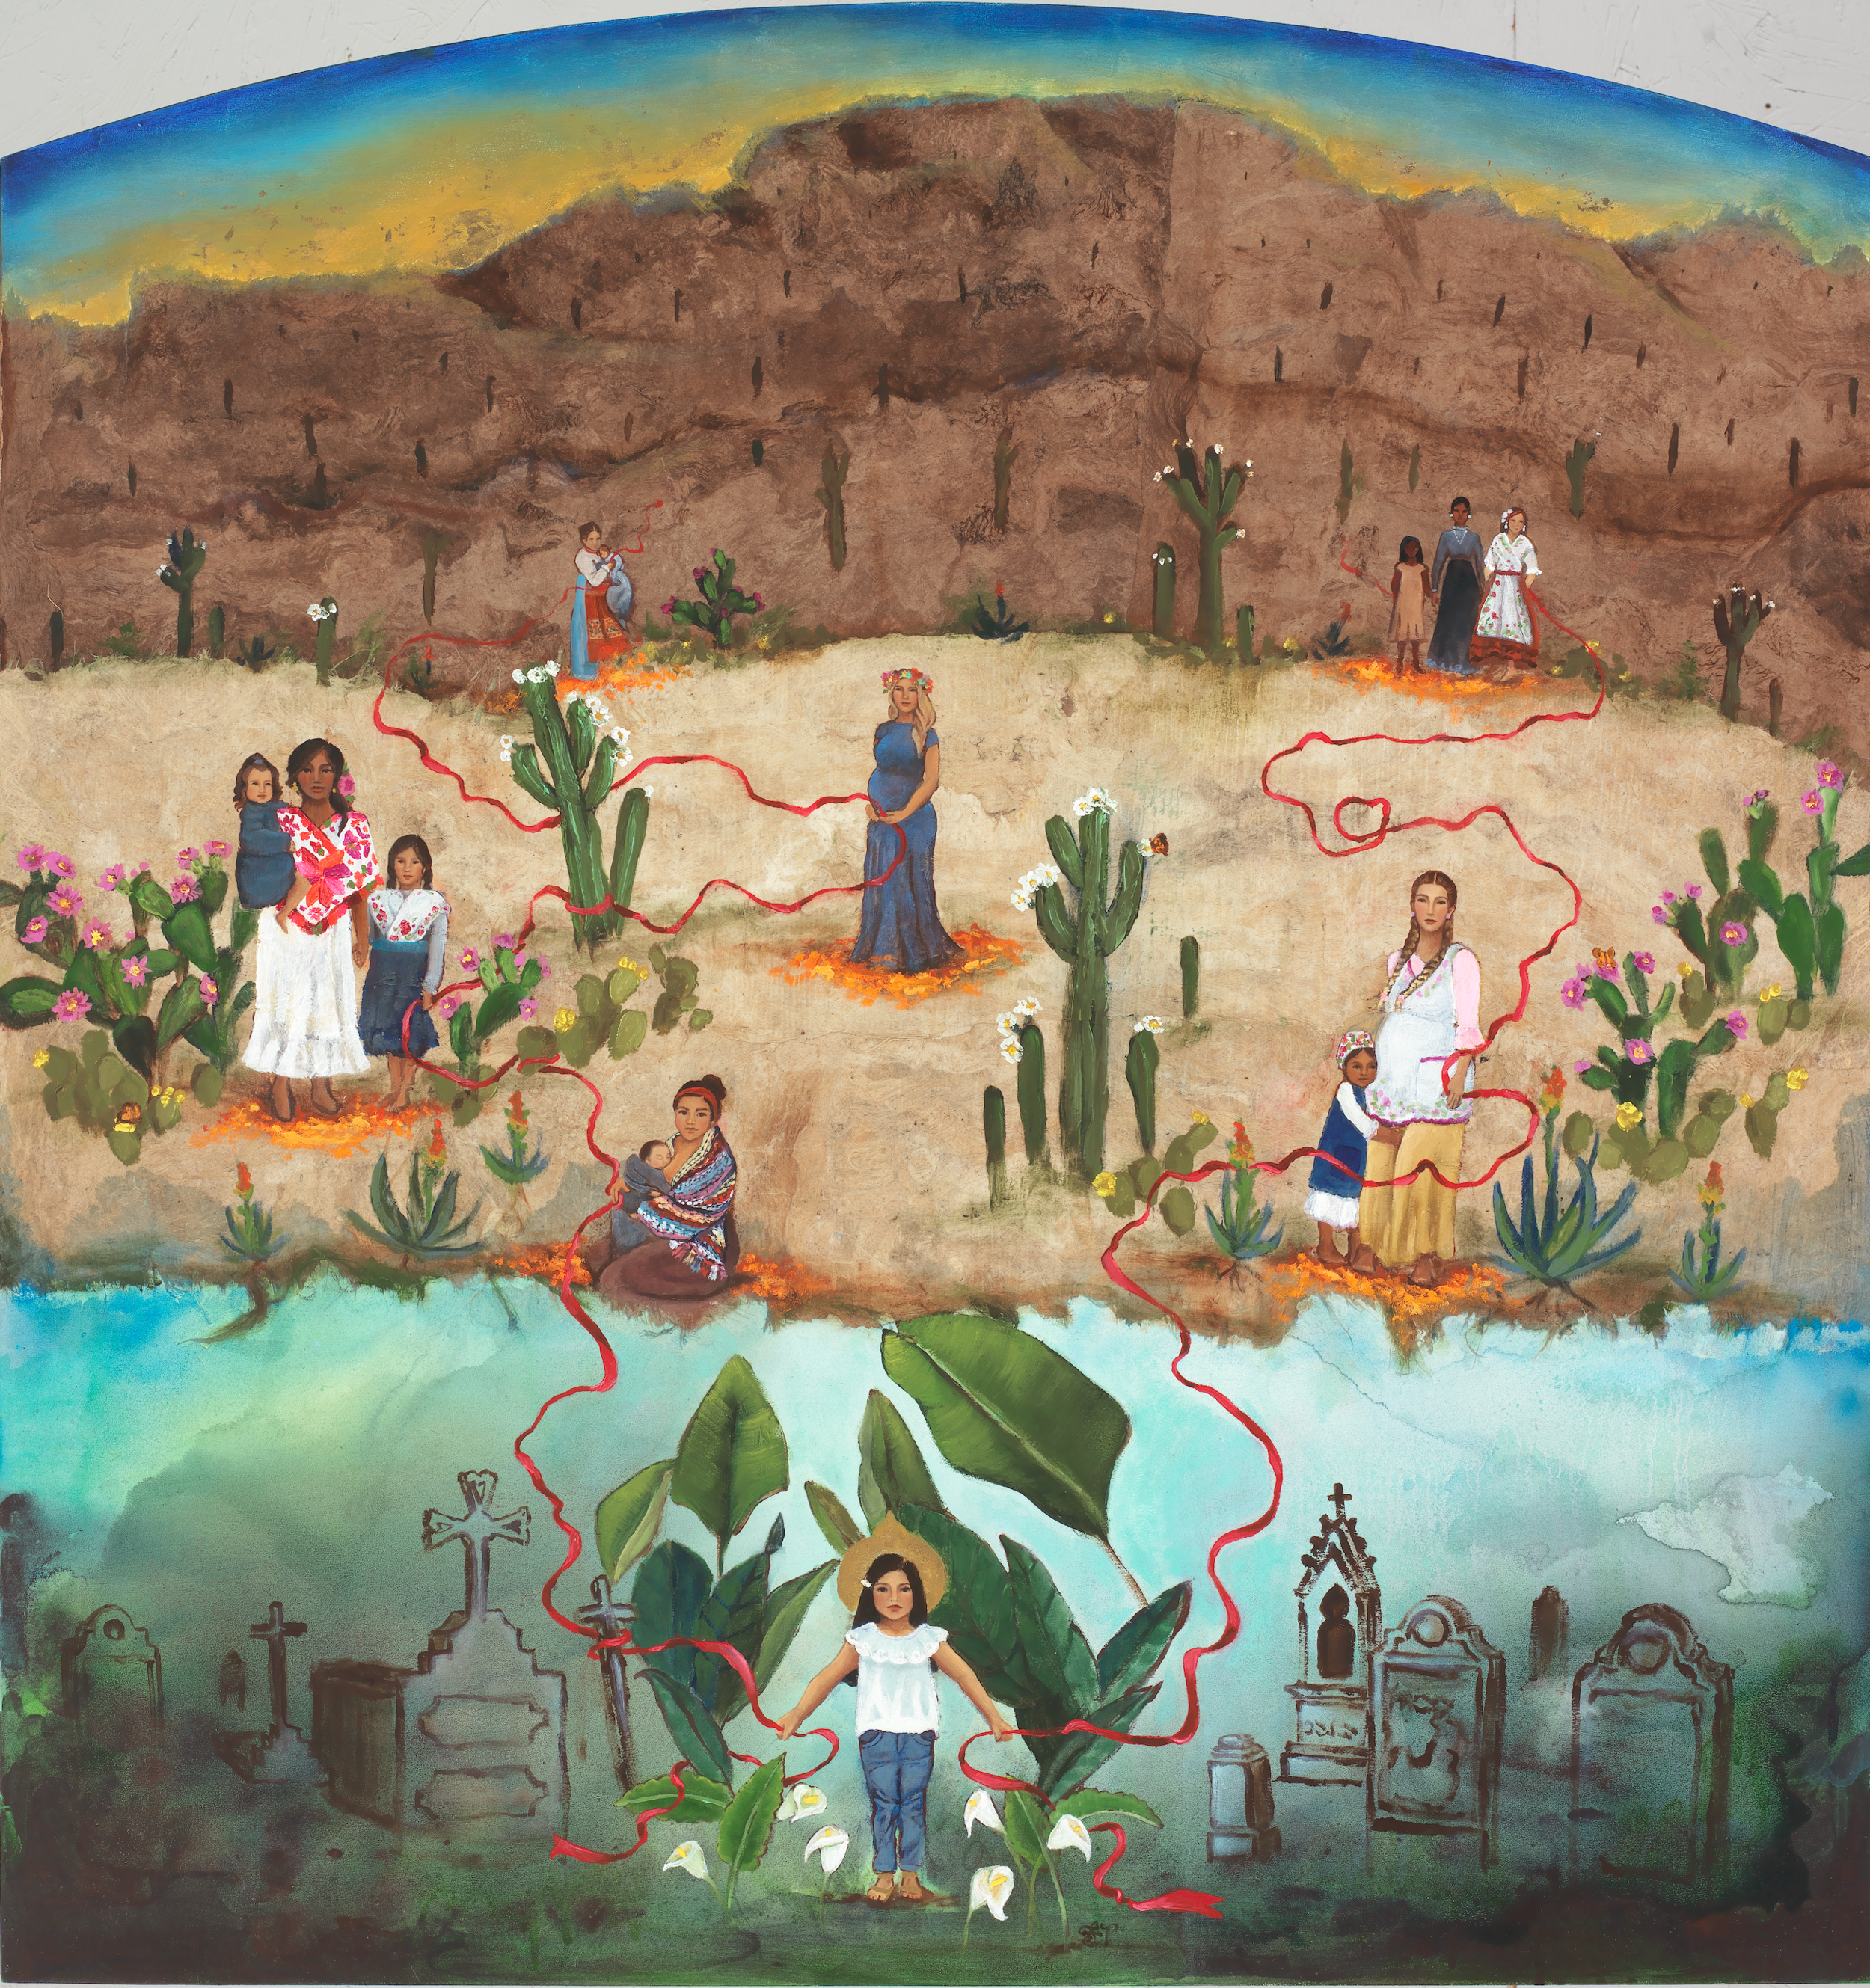 A painting of women in mountains, a desert, and a cemetery holding onto a red ribbon that connects them.